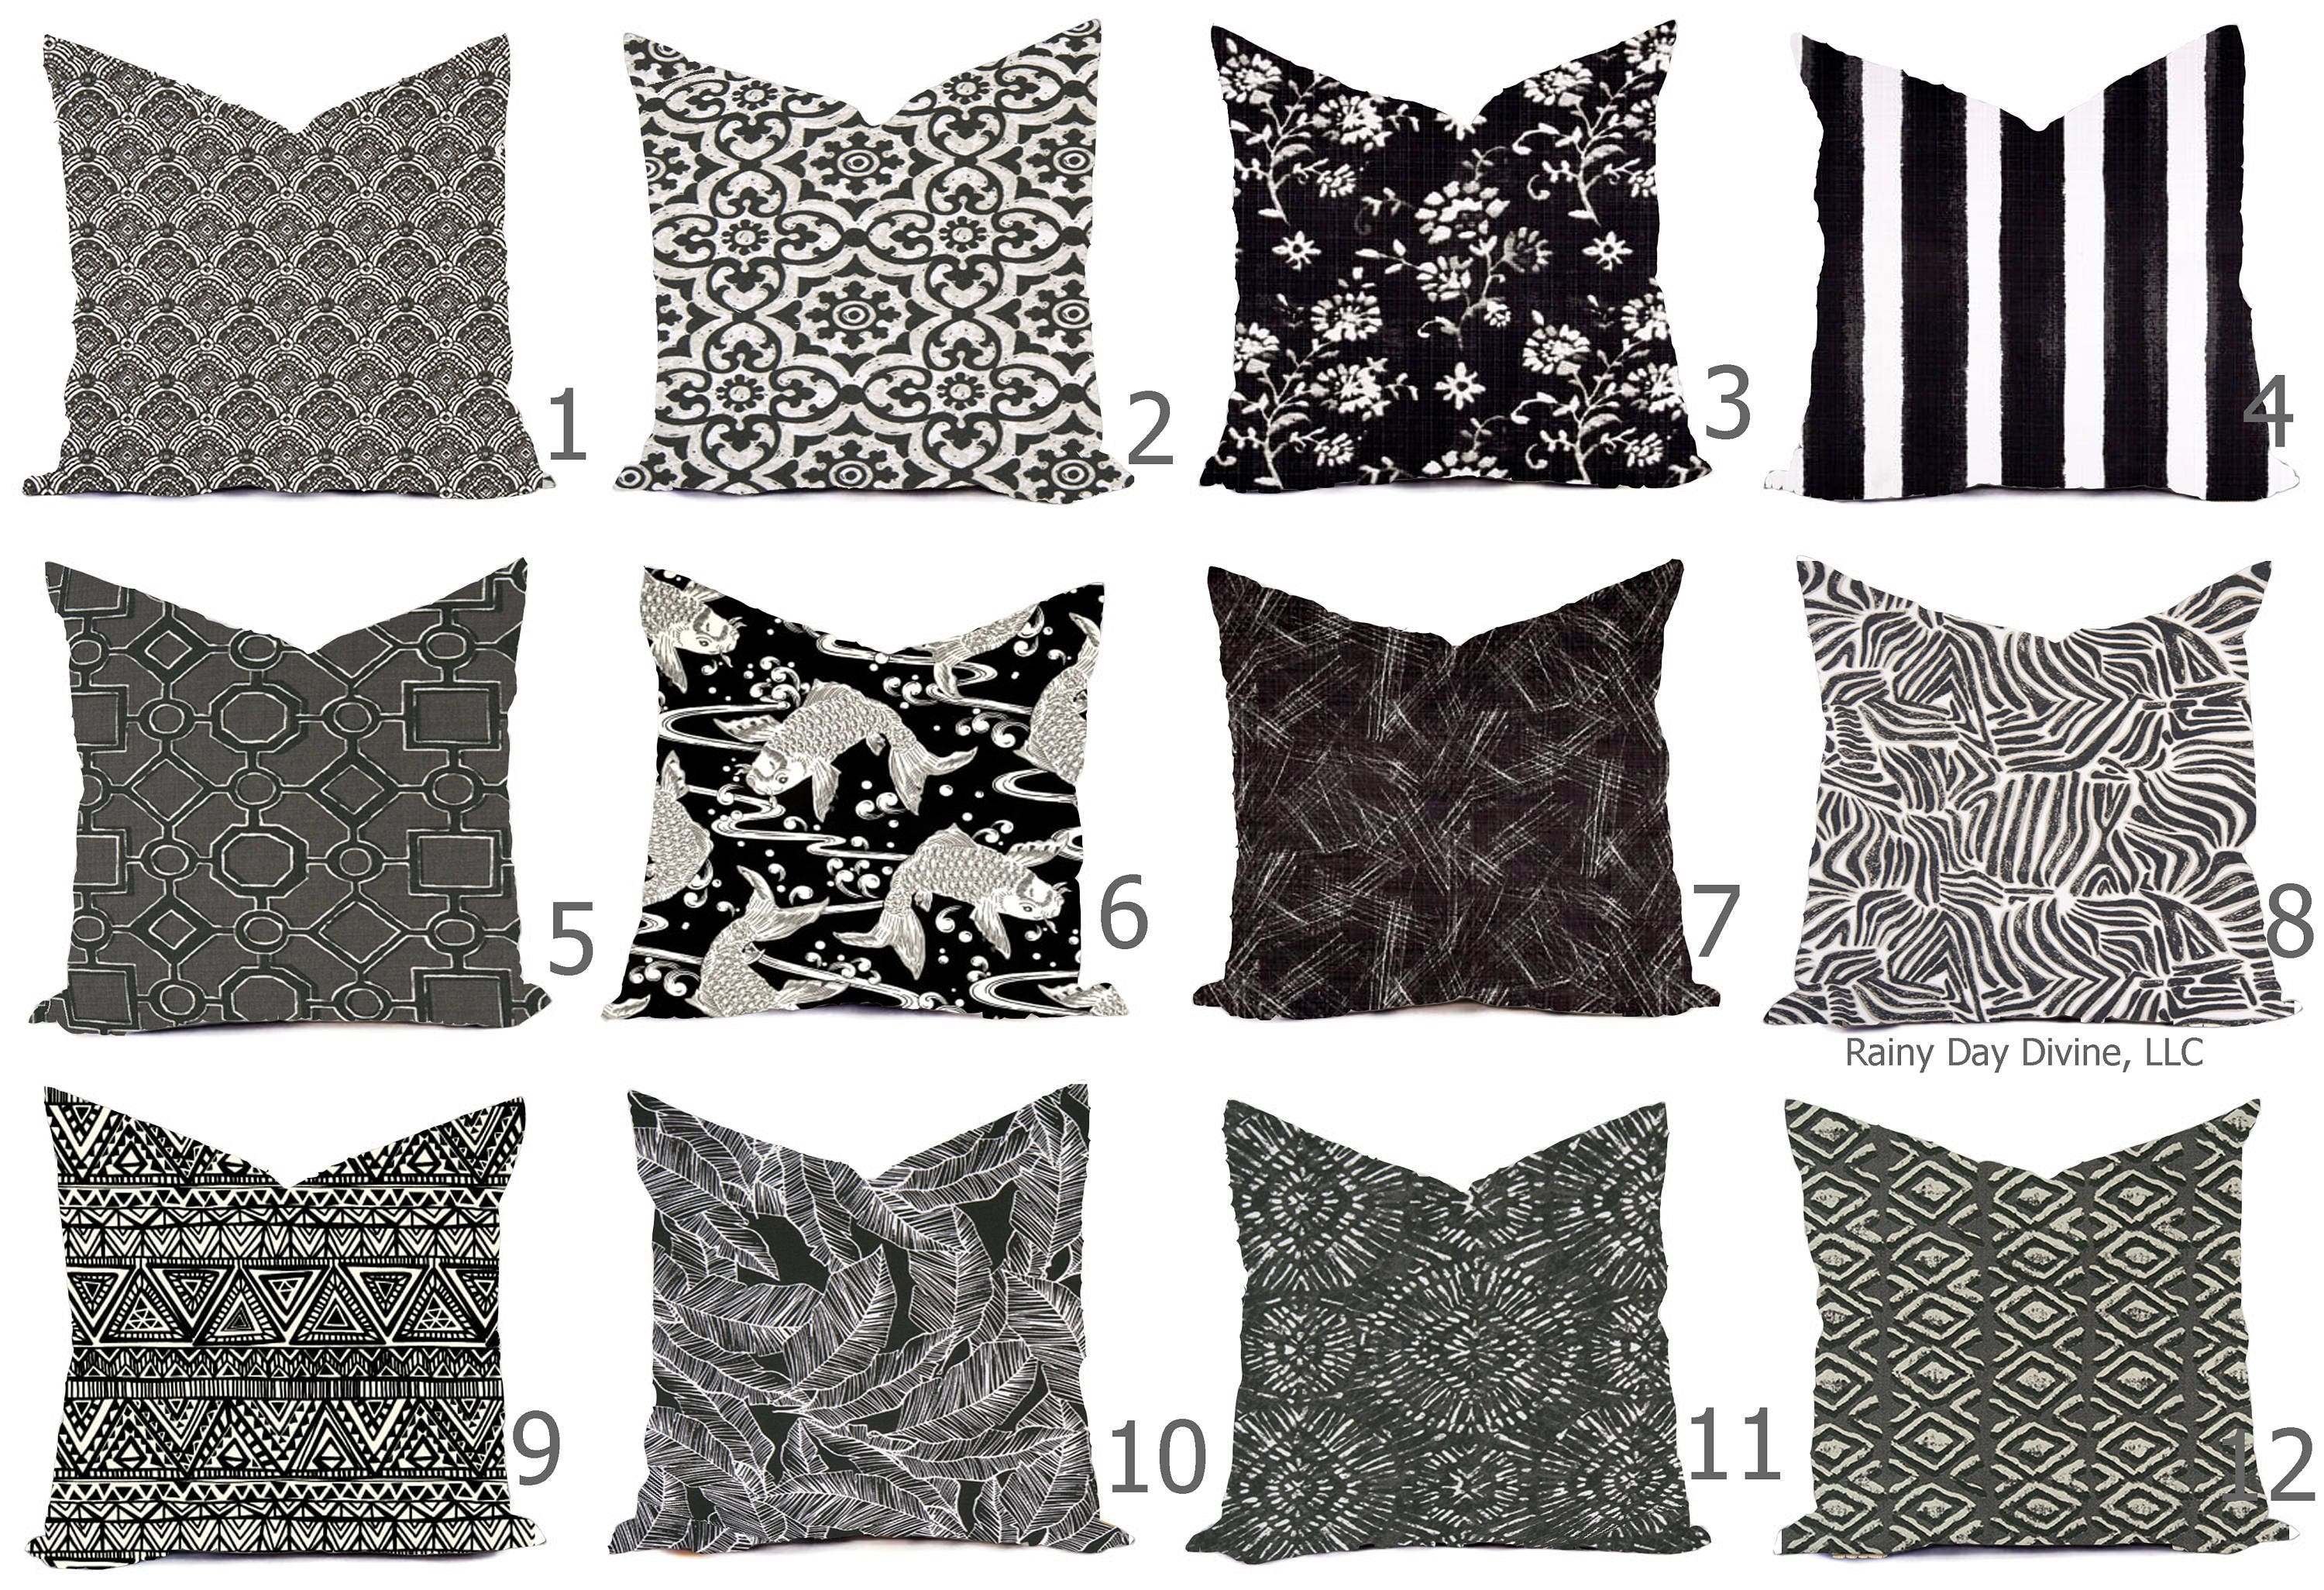 Outdoor pillows or indoor custom cover black gray taupe white contemporary modern geometric coastal 18x18 16x16